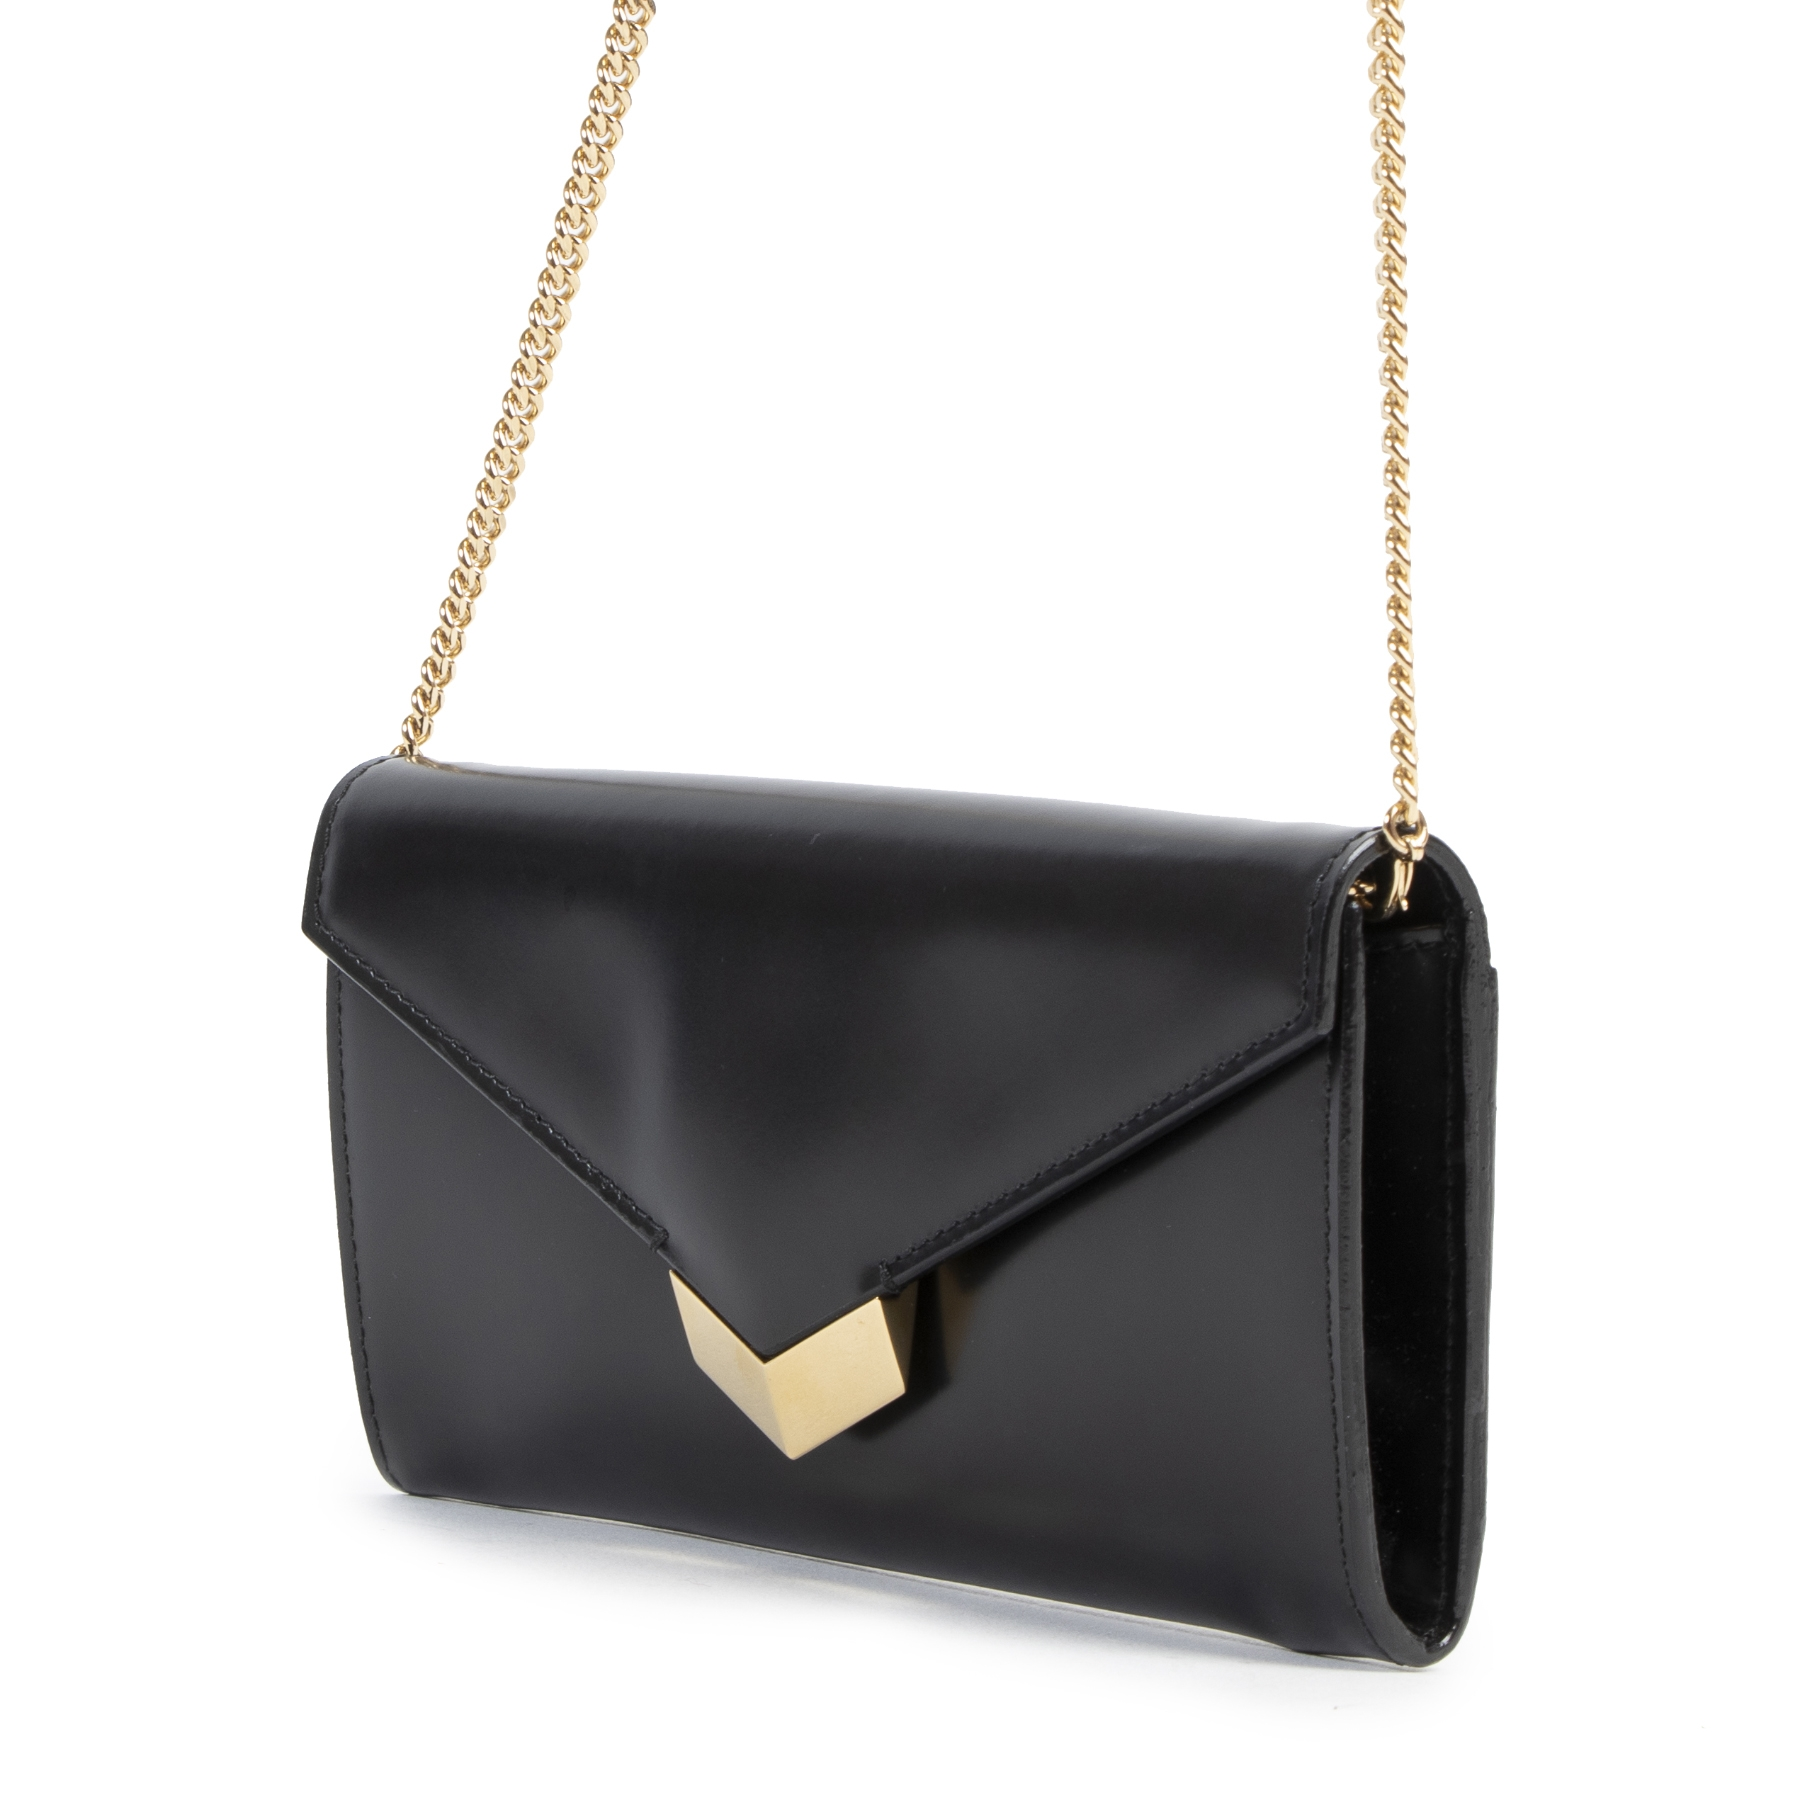 Jimmy Choo Black Lucile Clutch